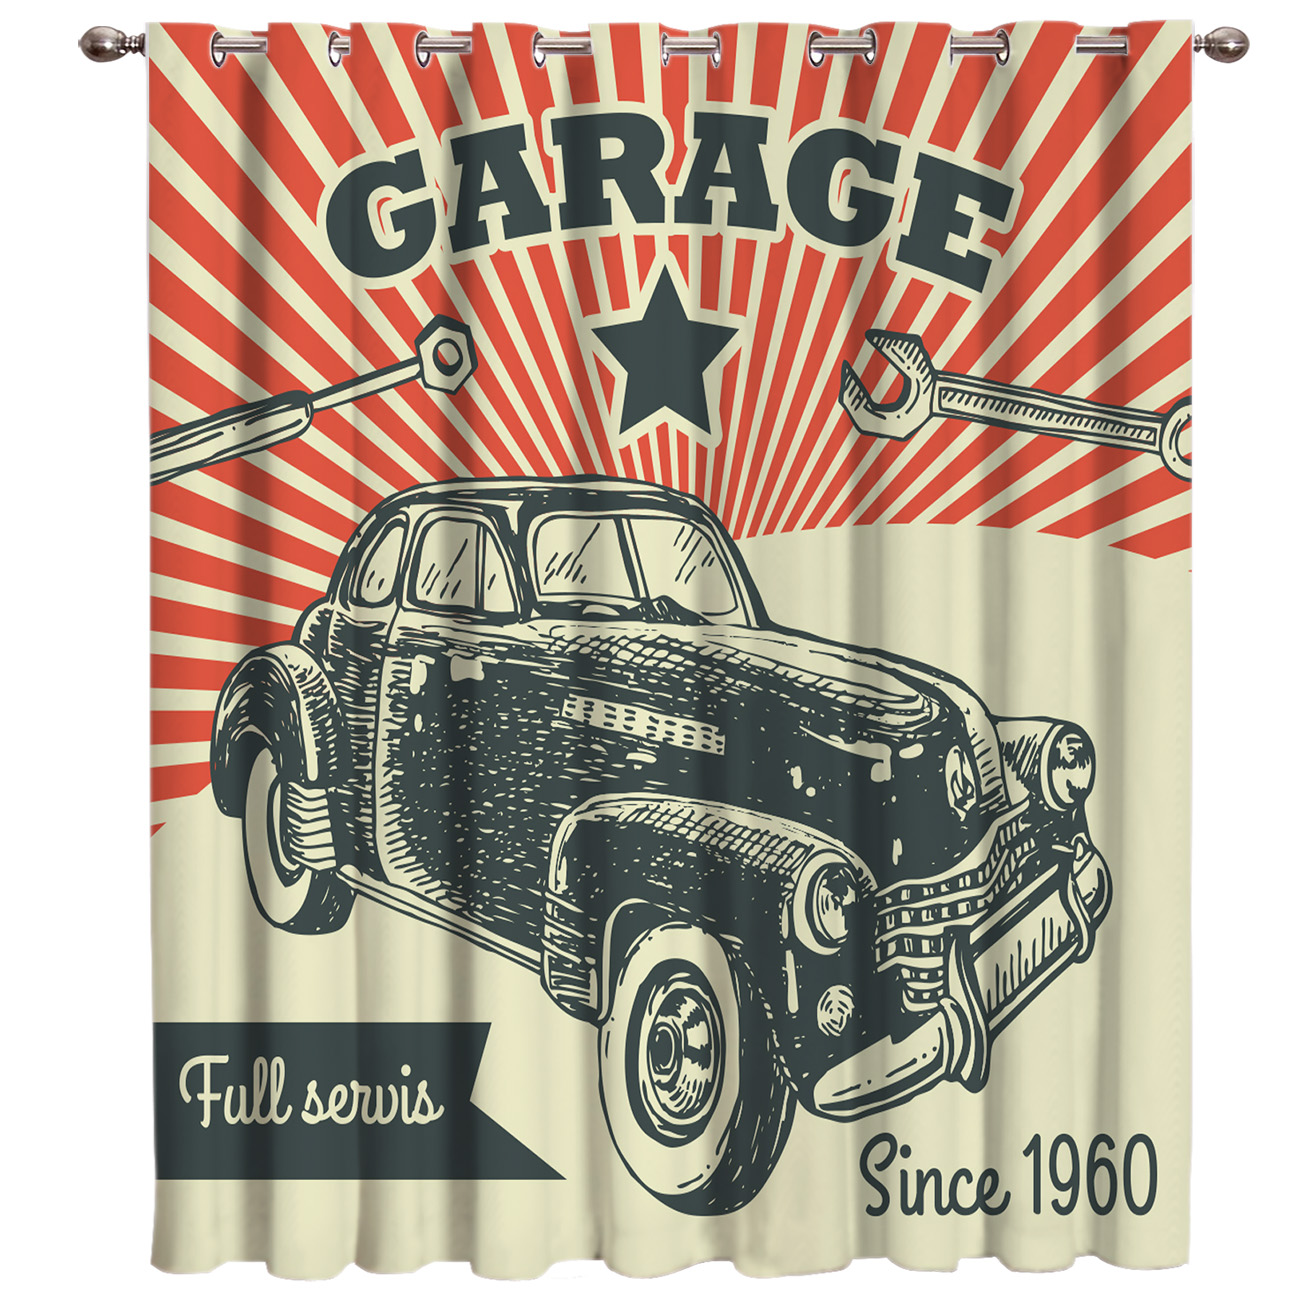 Old Fashioned Car Poster Blackout Bedroom Indoor Fabric Decor Kids Curtain Panels With Grommets Window Treatment Valances Window